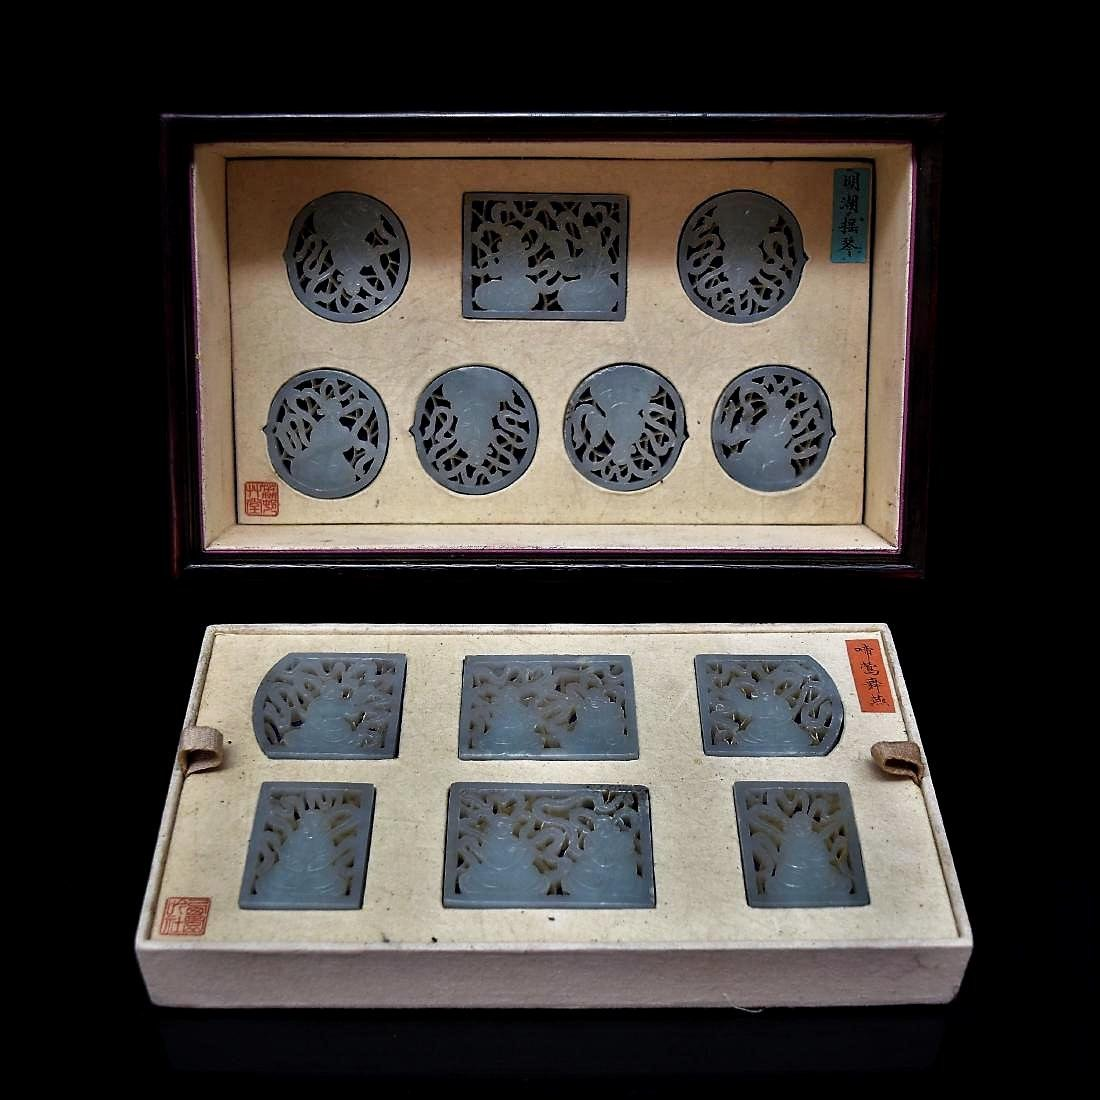 SET OF 13 CARVED JADE MEDALIONS AND PLAQUES IN A BOX